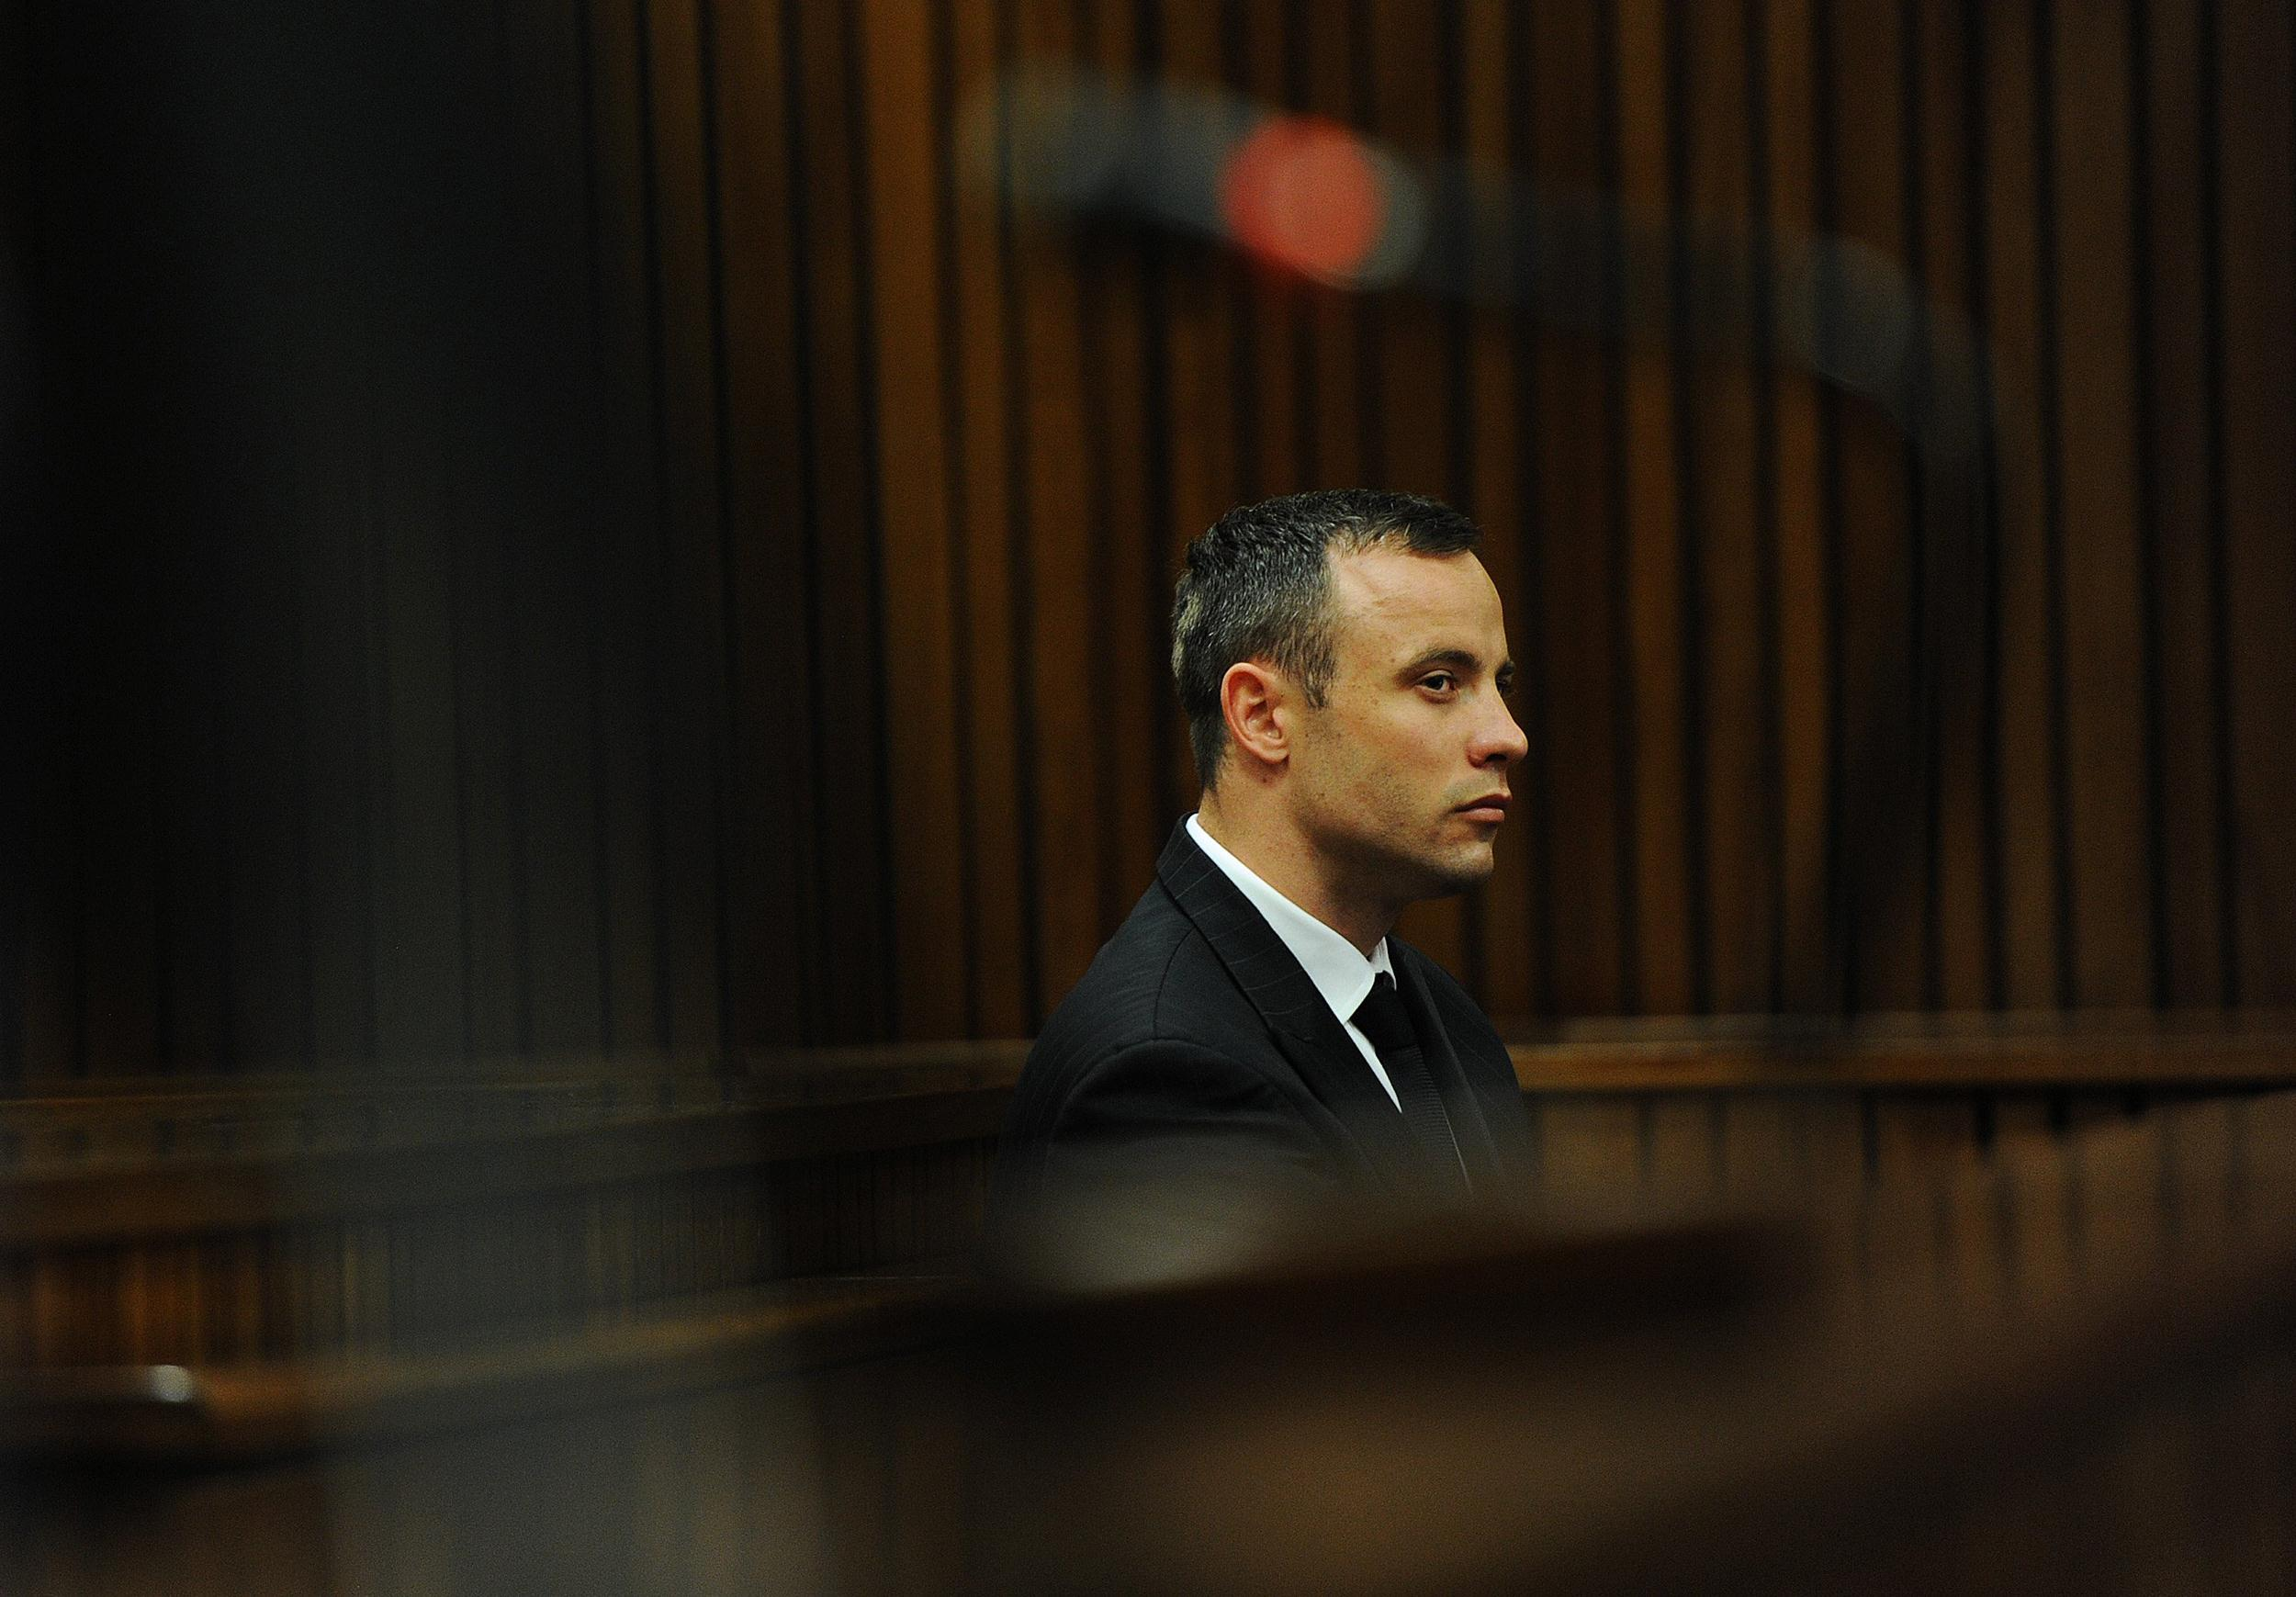 Image: Oscar Pistorius Is Tried For The Murder Of His Girlfriend Reeva Steenkamp